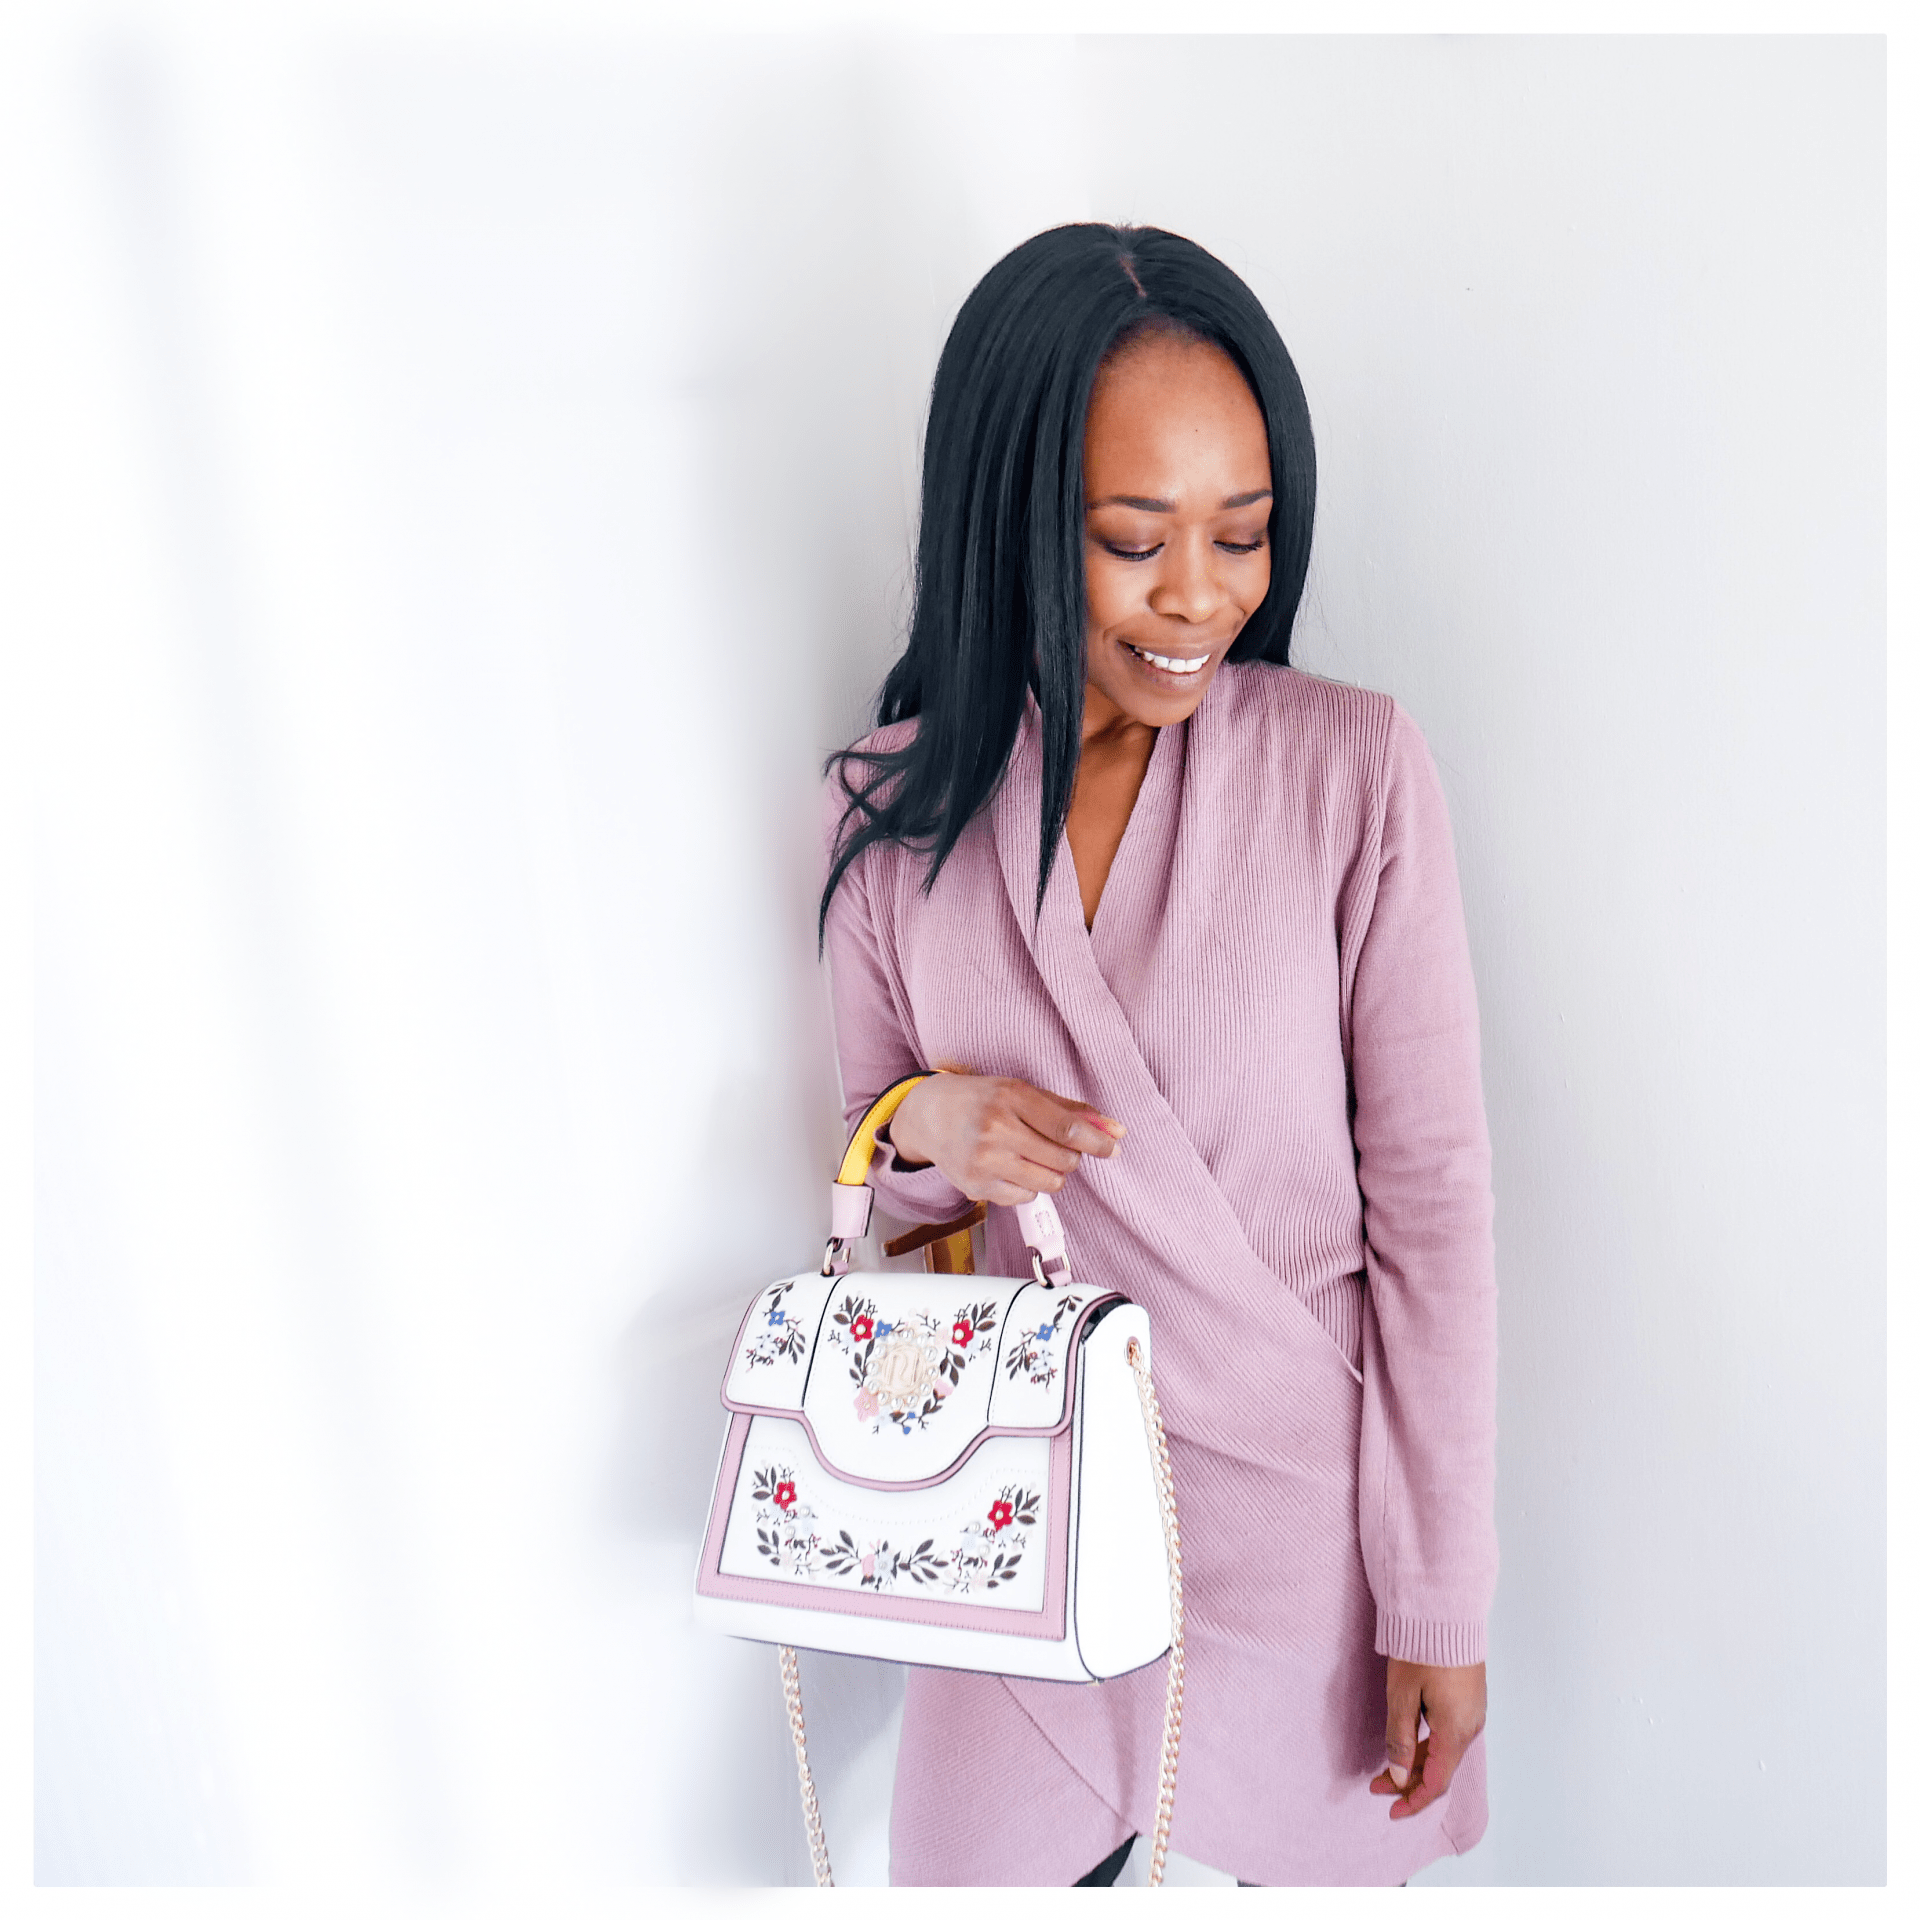 How to Wear Pastels 2019 Updated |Mauve Jumper Dress with Pastel Floral Bag| www.kittyandb.com #Lilac #Pastel #Chic #colourInspiration #OutfitInspiration #ColourPairing #Mauve #Embroidery #bag #PinkAesthetic